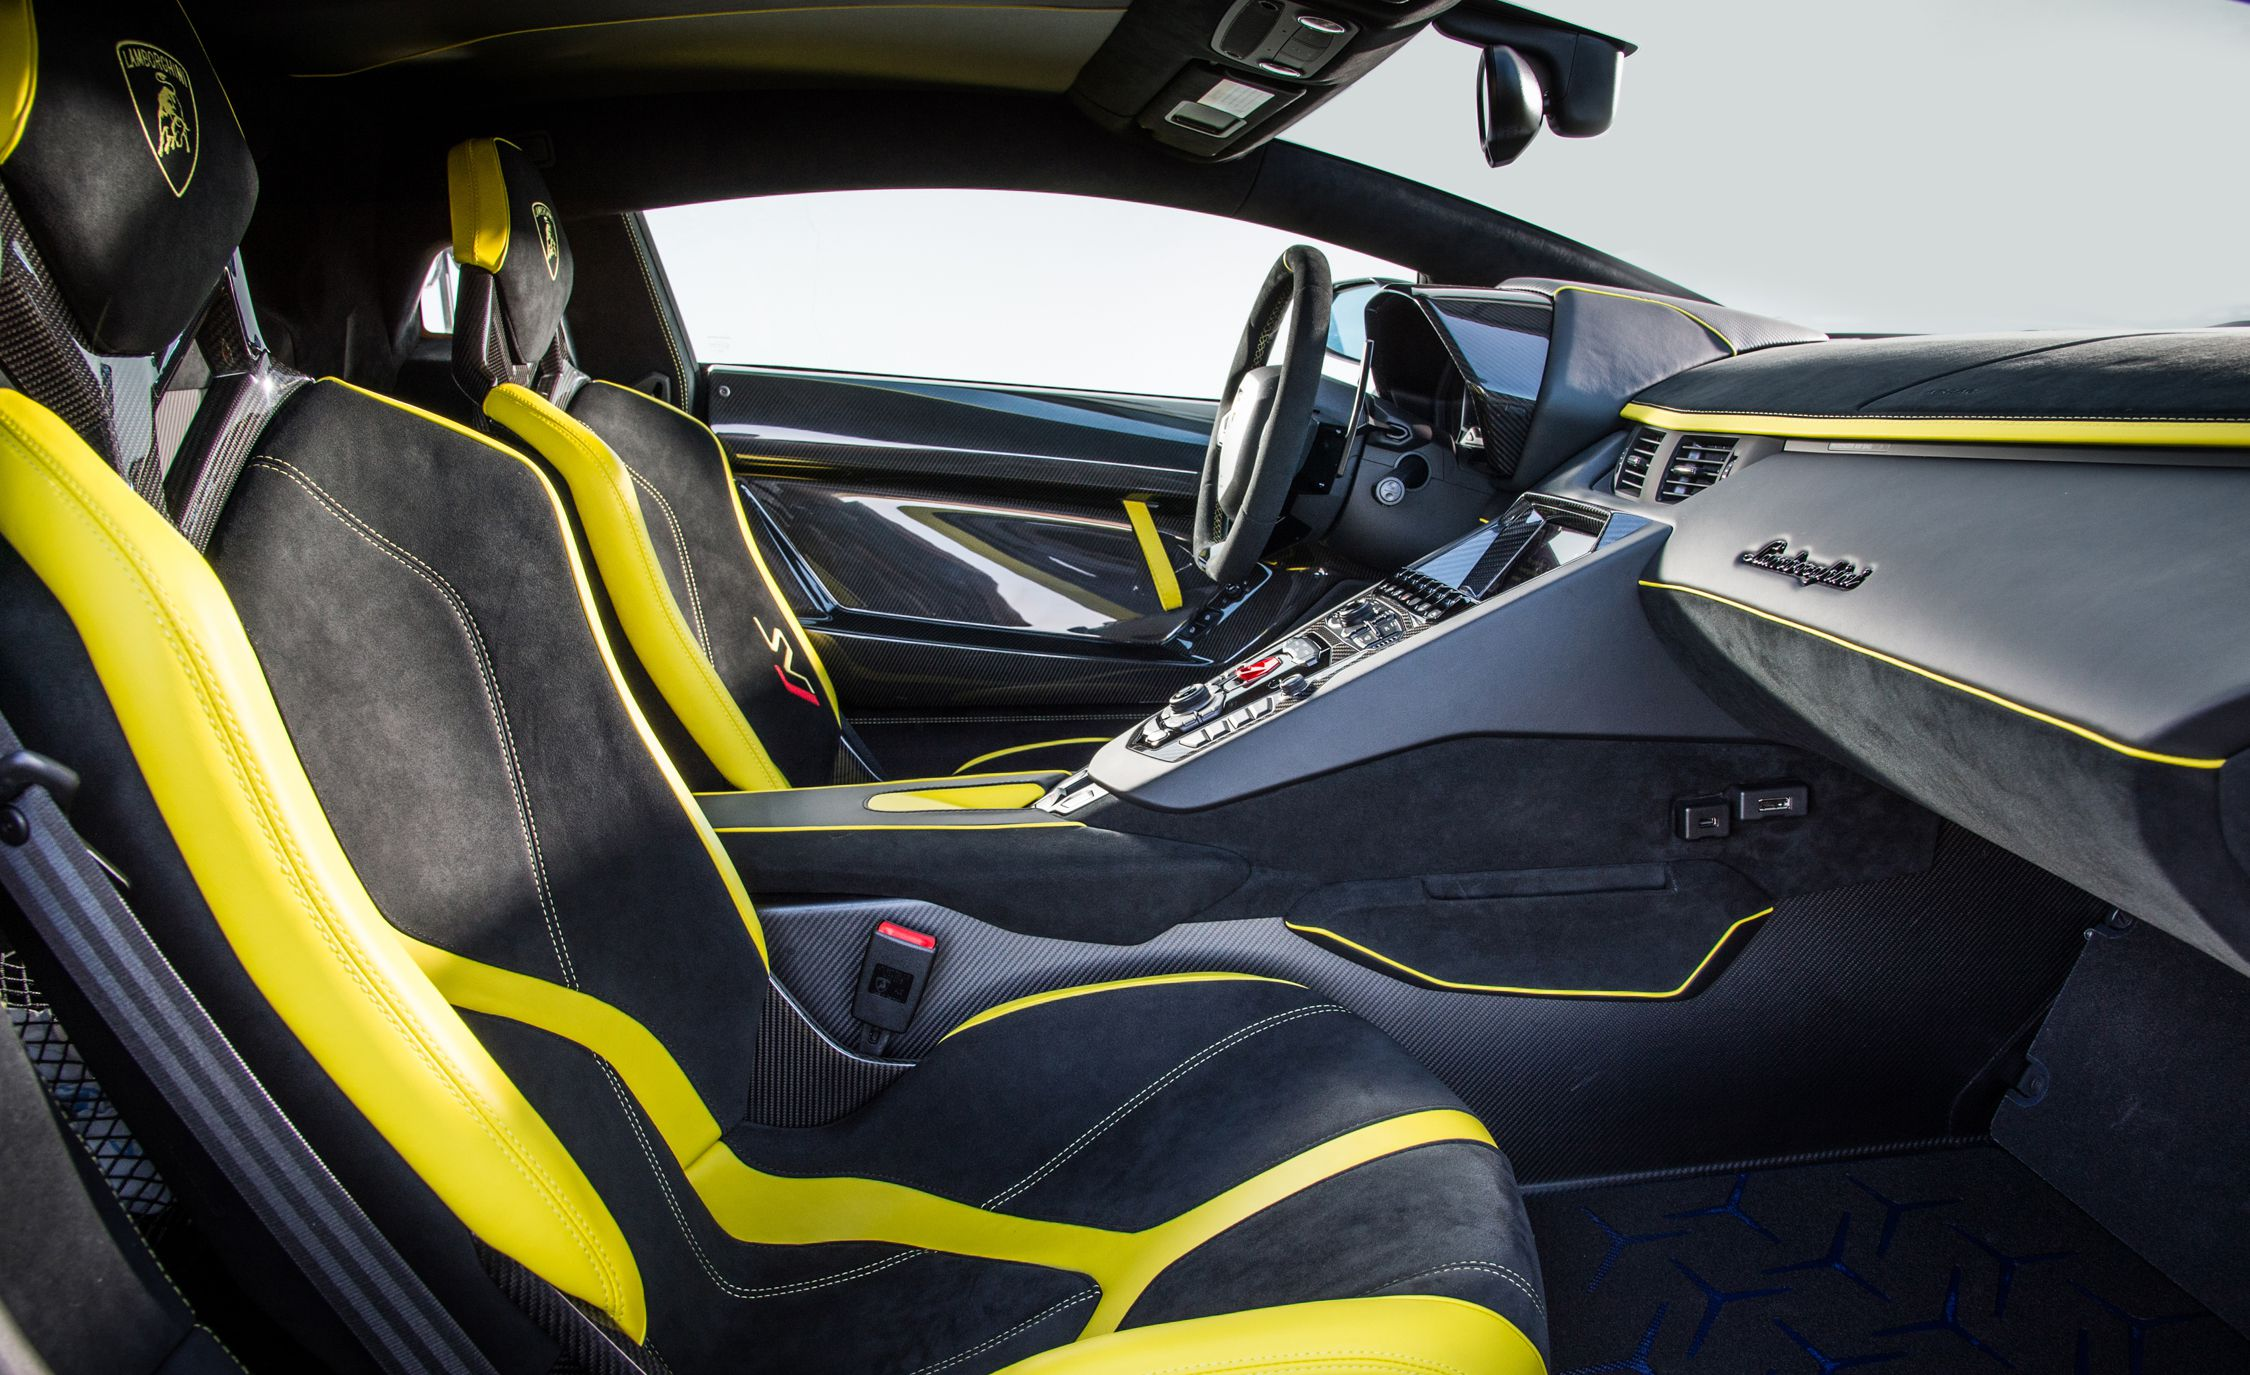 2019 Lamborghini Aventador Svj Interior Detail Wallpaper 108 Hd